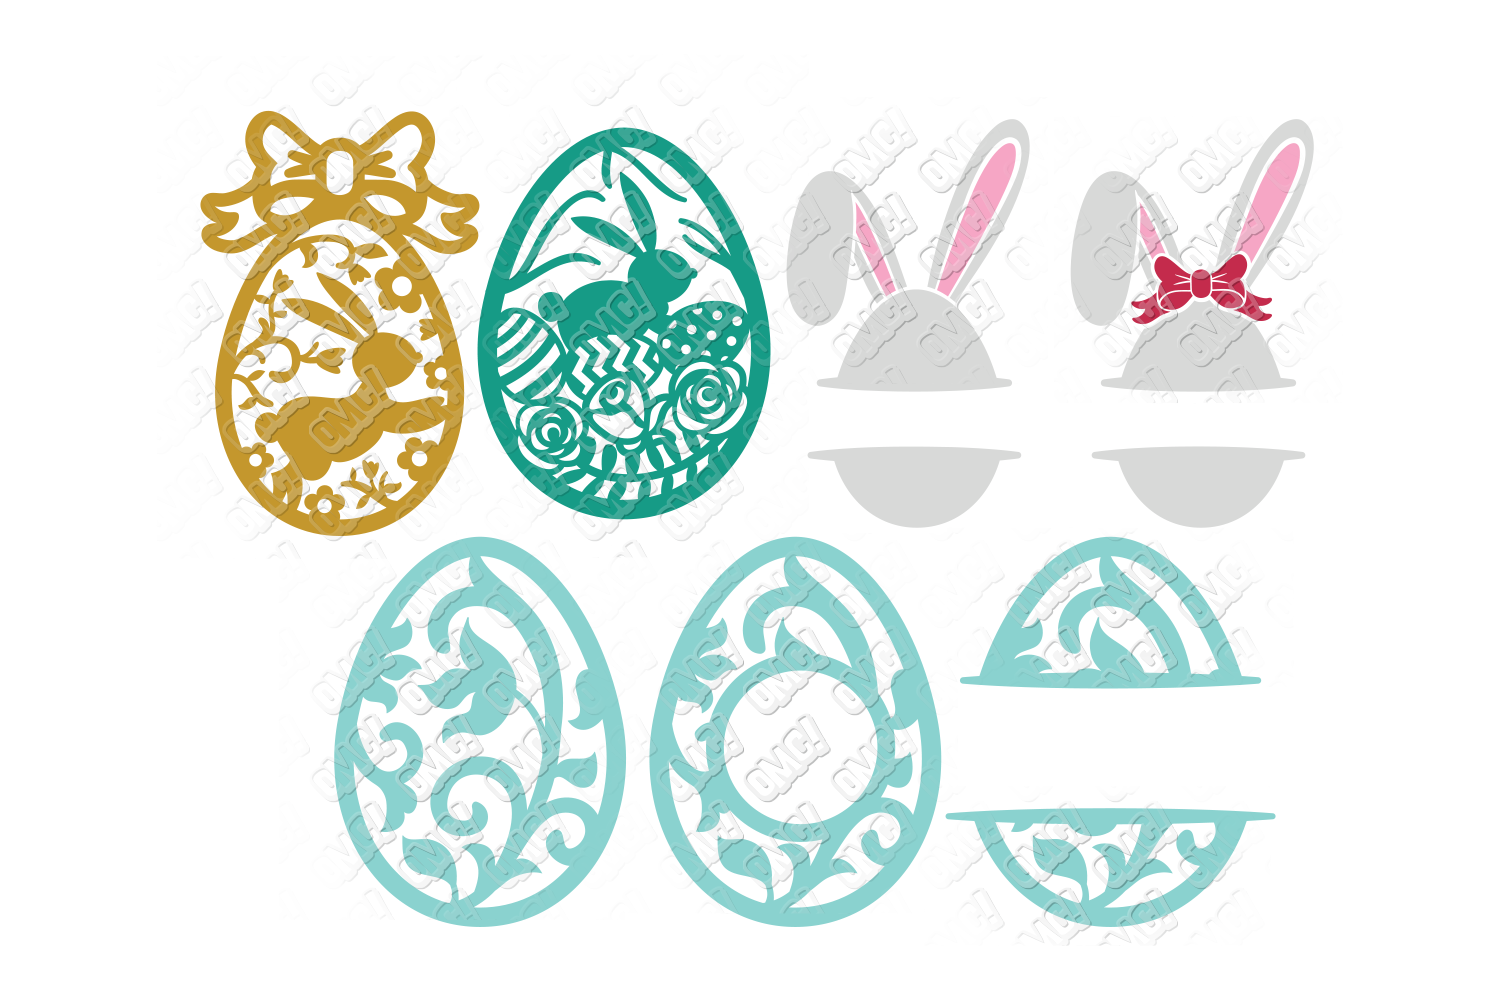 Easter Egg SVG Monogram Quotes in SVG, DXF, PNG, EPS, JPEG example image 3